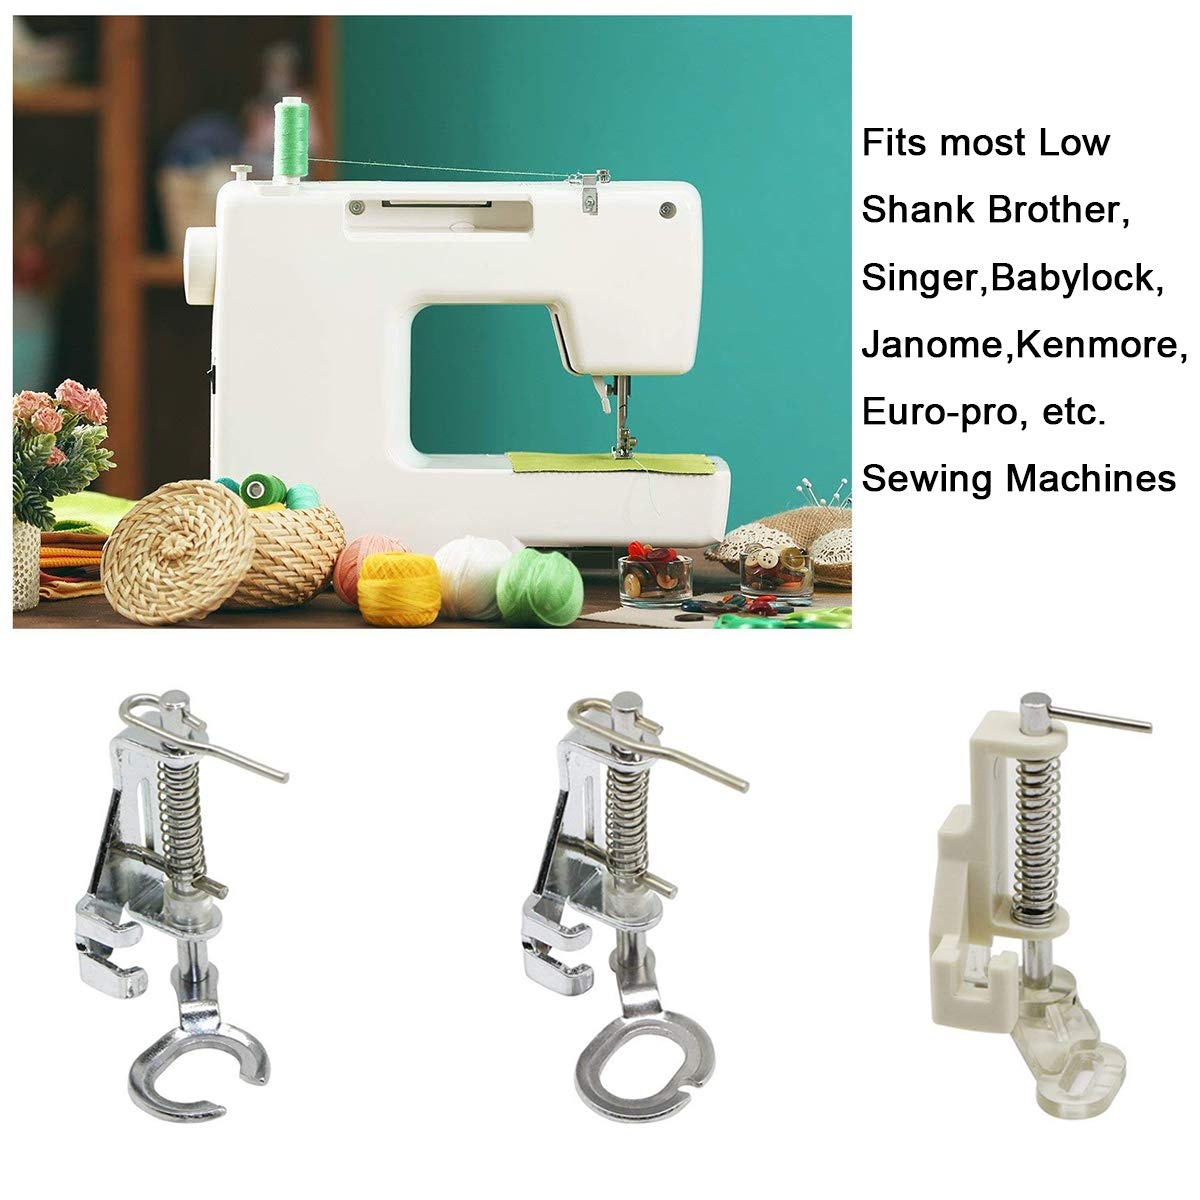 Kenmore Fits Most Low Shank Singer Elna Plus More Juki Babylock Simplicity New Home Free-Motion Darning Quilting Open Toe Sewing Machine Presser Foot Brother Janome